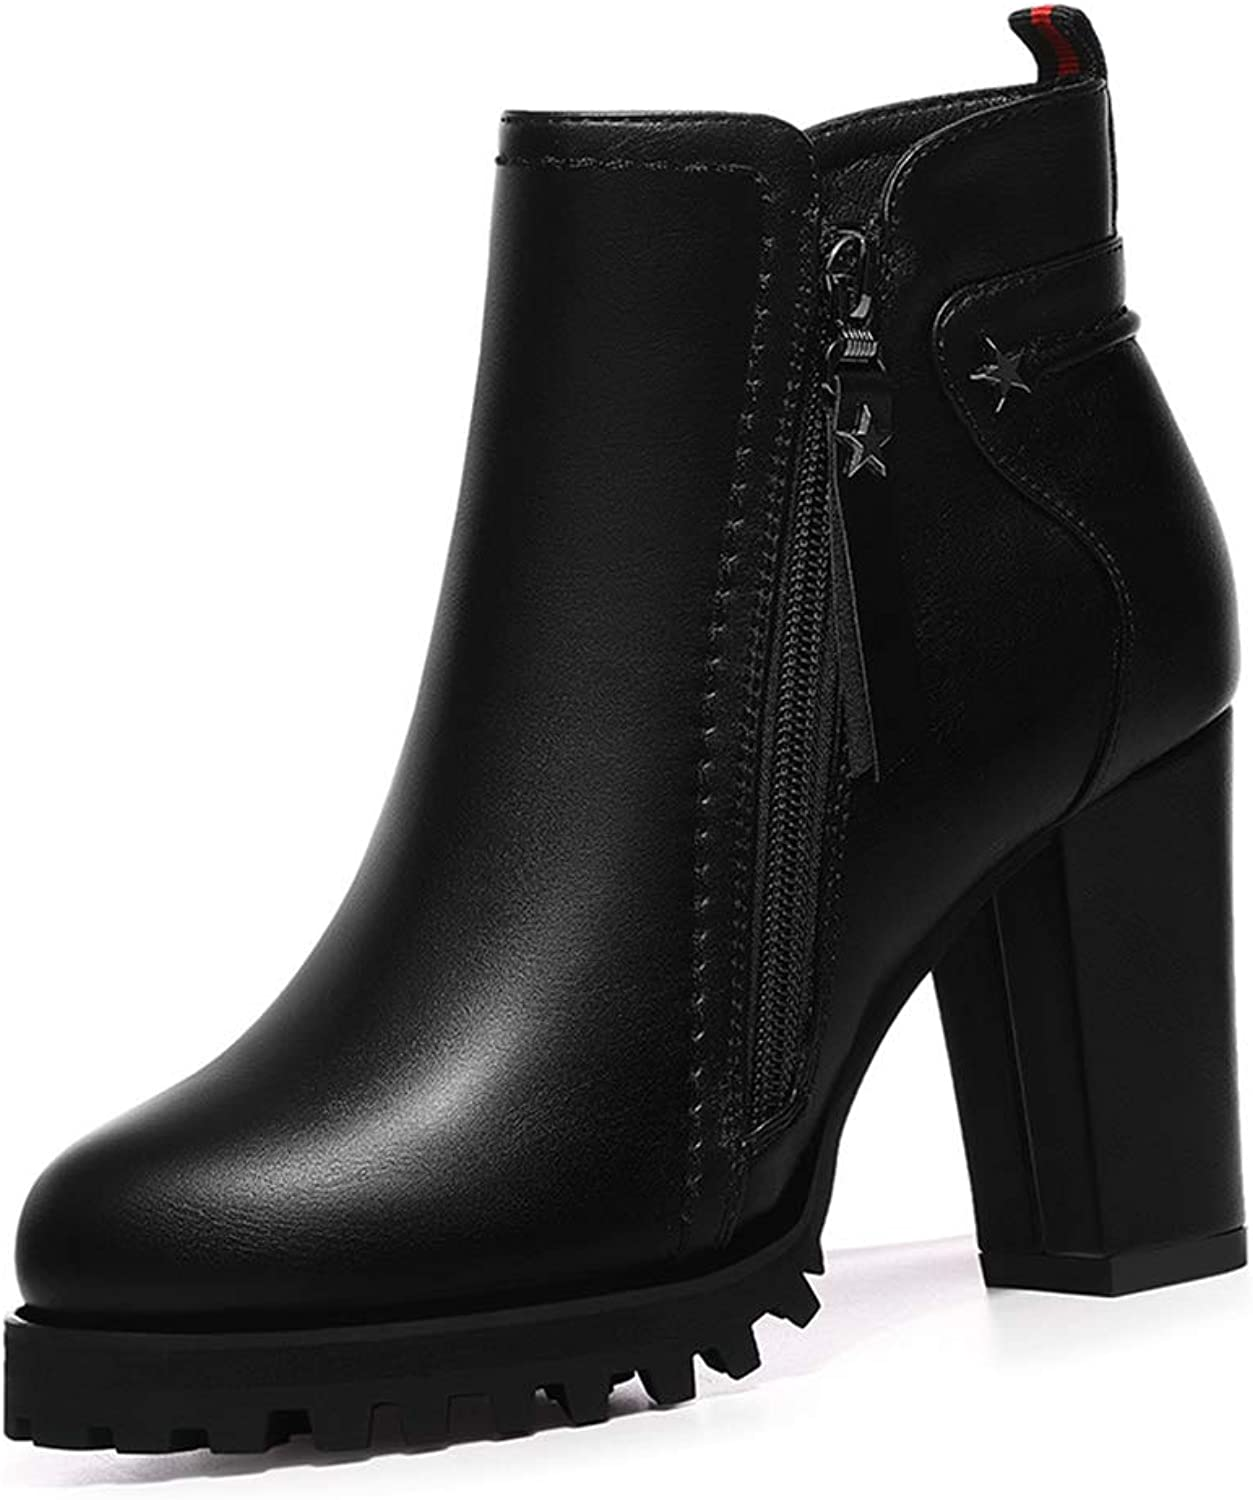 Women's Booties, Round Head Thick Heel High Heel Plus Velvet Leather Boots Ladies Fall Winter Non-Slip Fashion Boots Black (color   Black, Size   36)